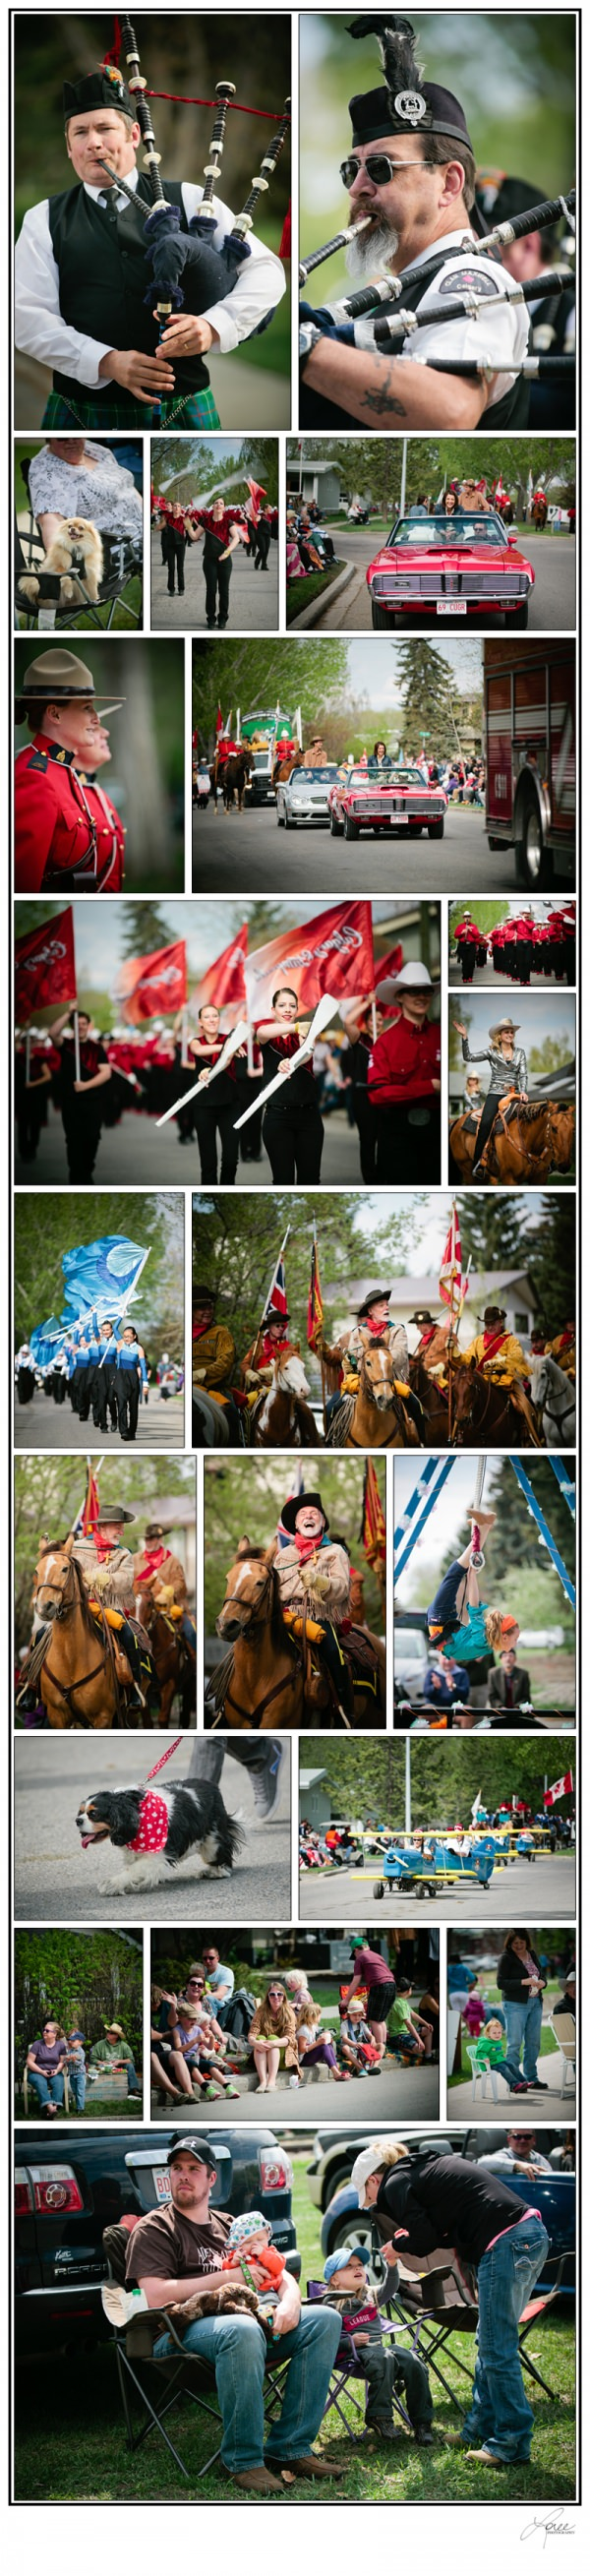 Loree Photography High River Little Britches Parade